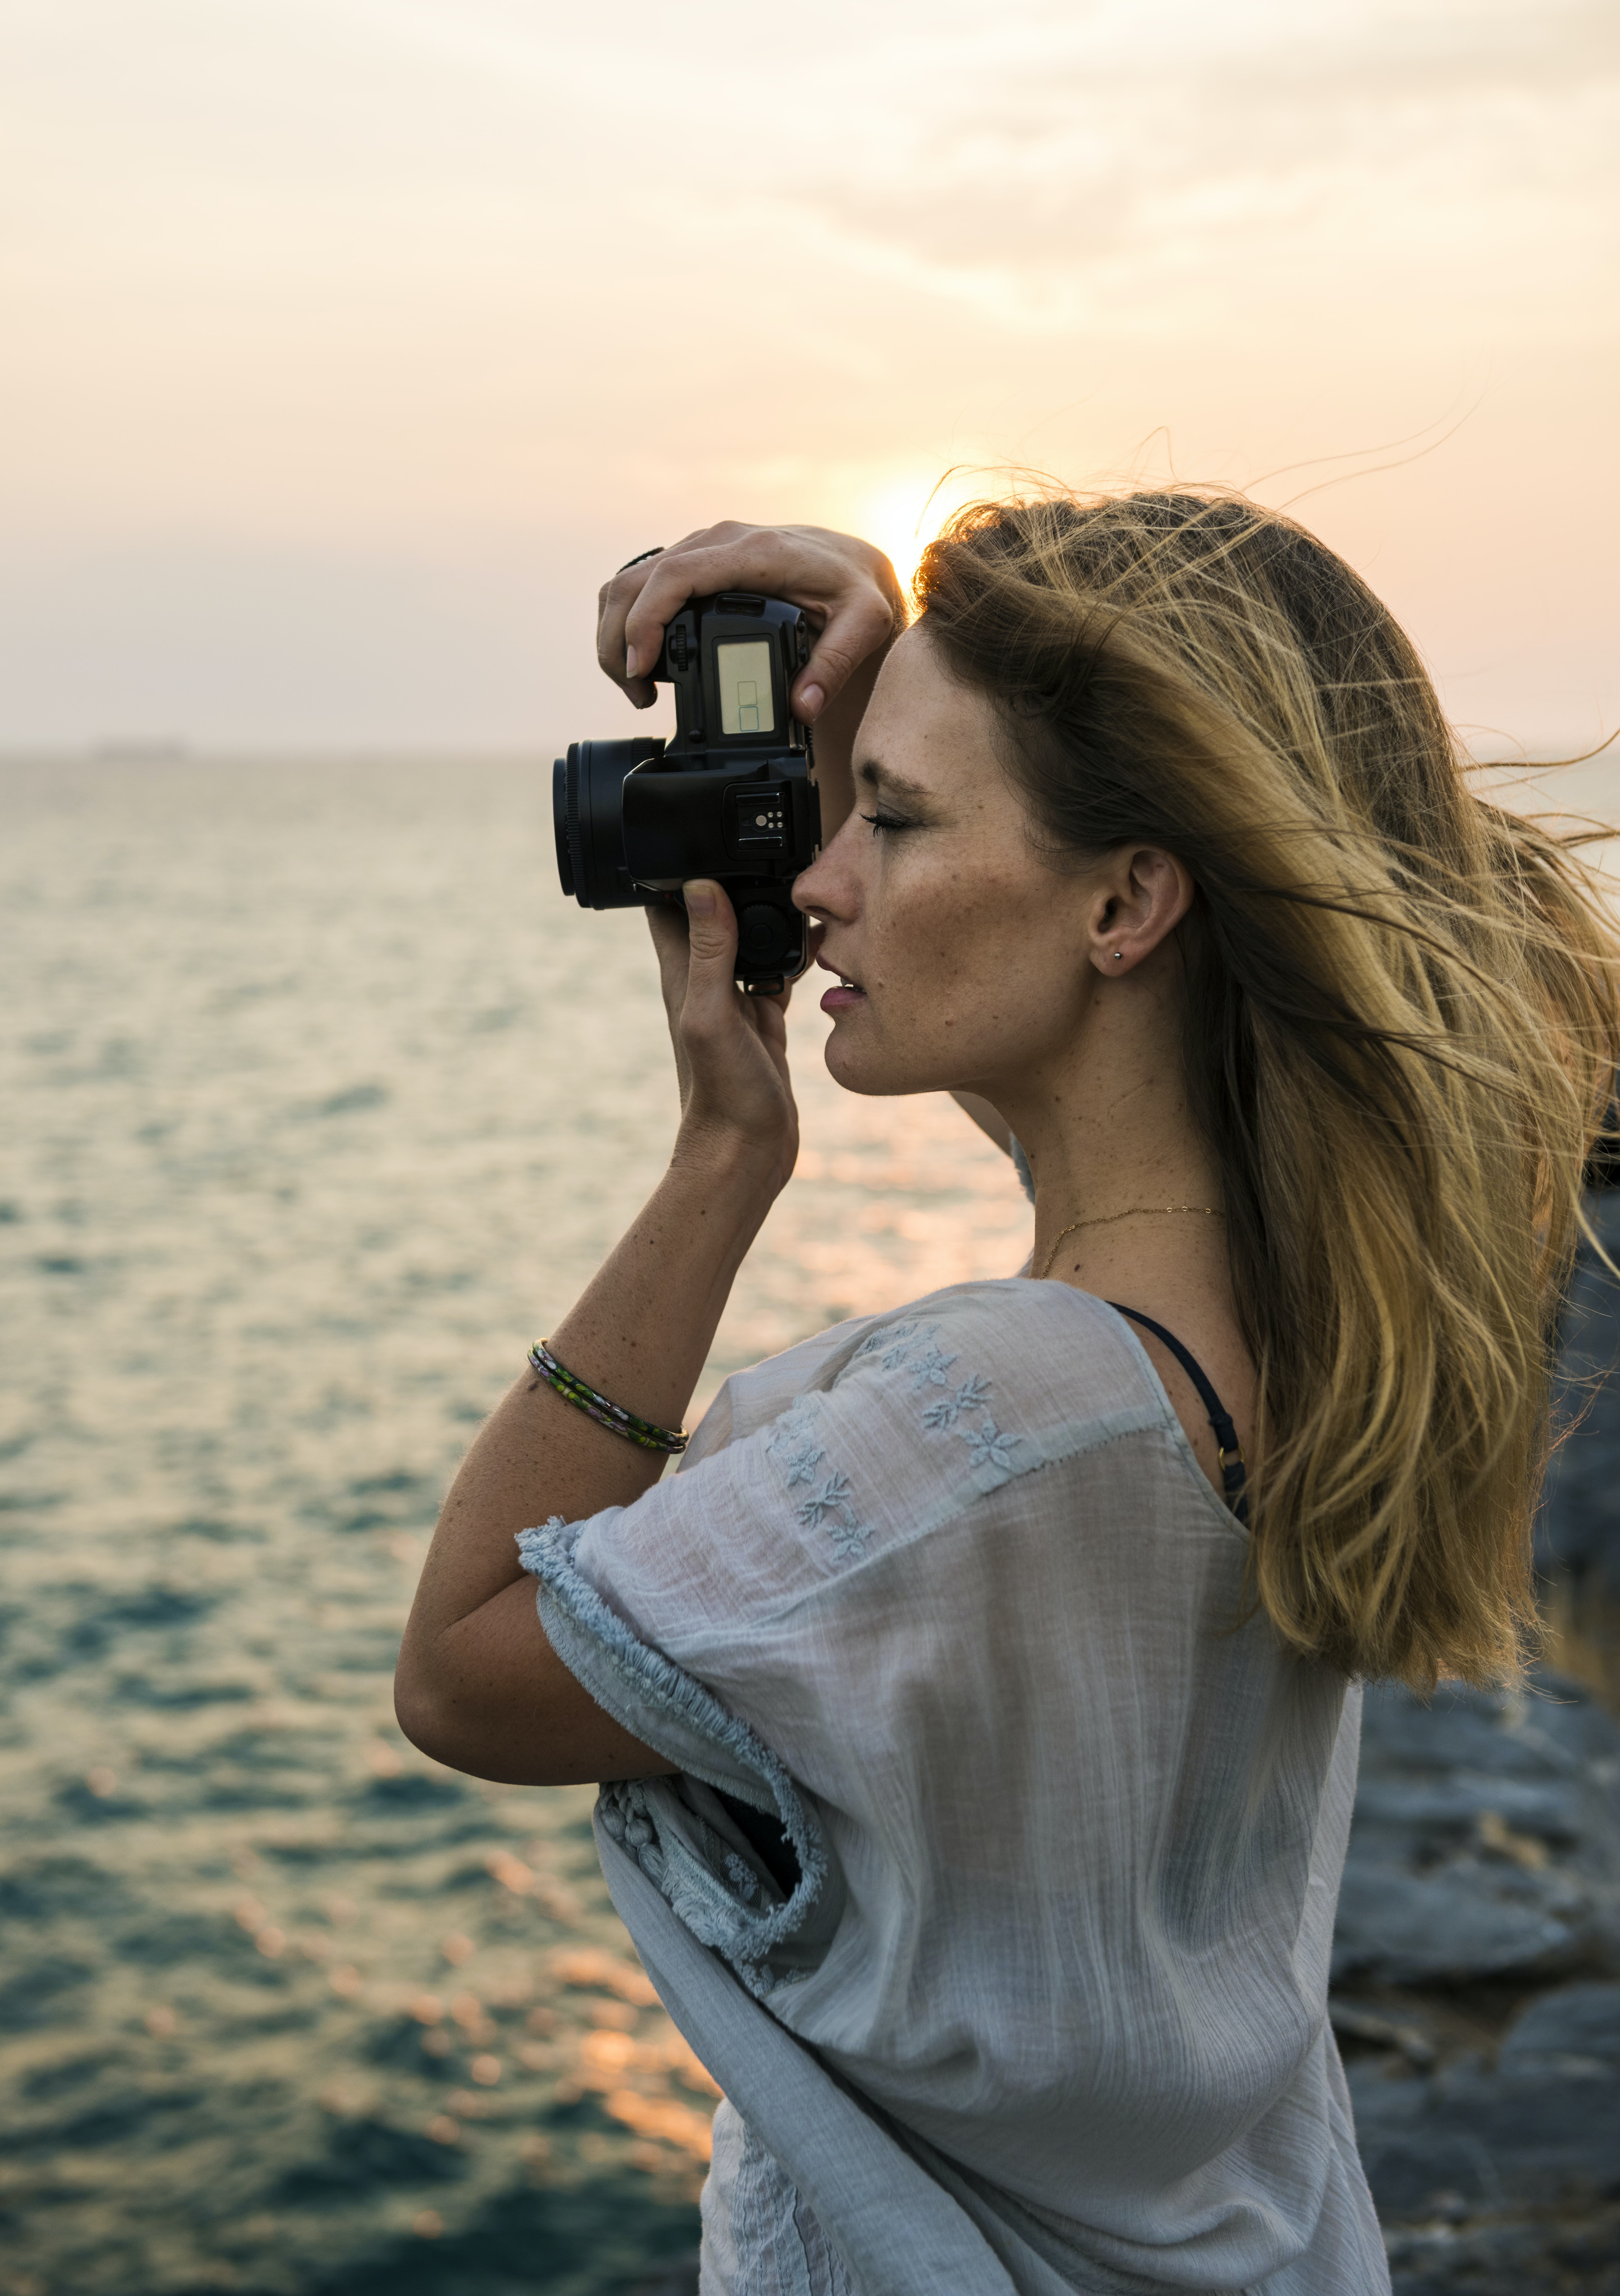 woman taking photo near body of water during daytime